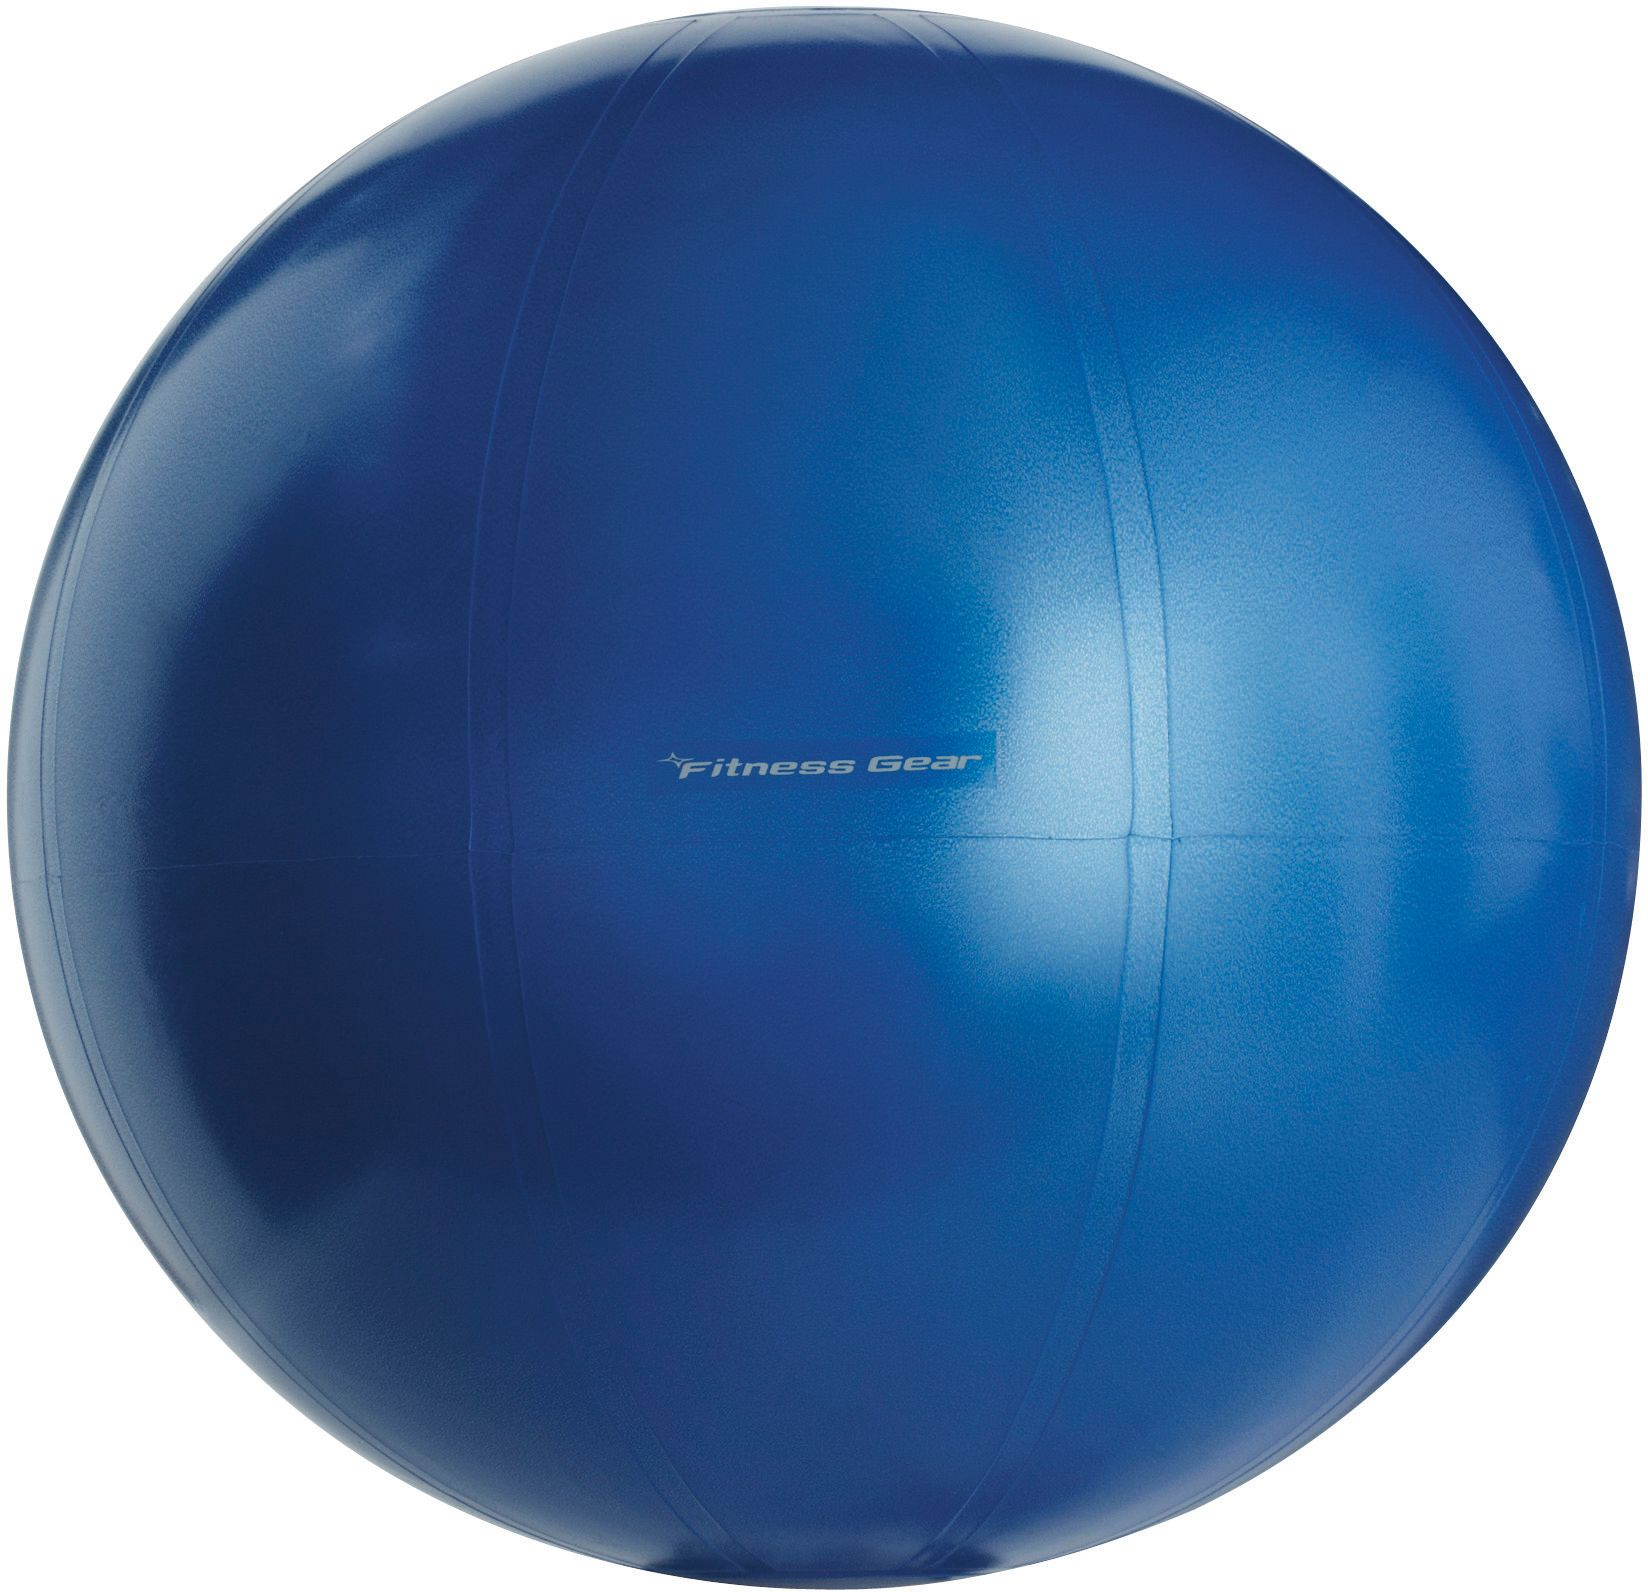 Exercise Balls & Stability Balls